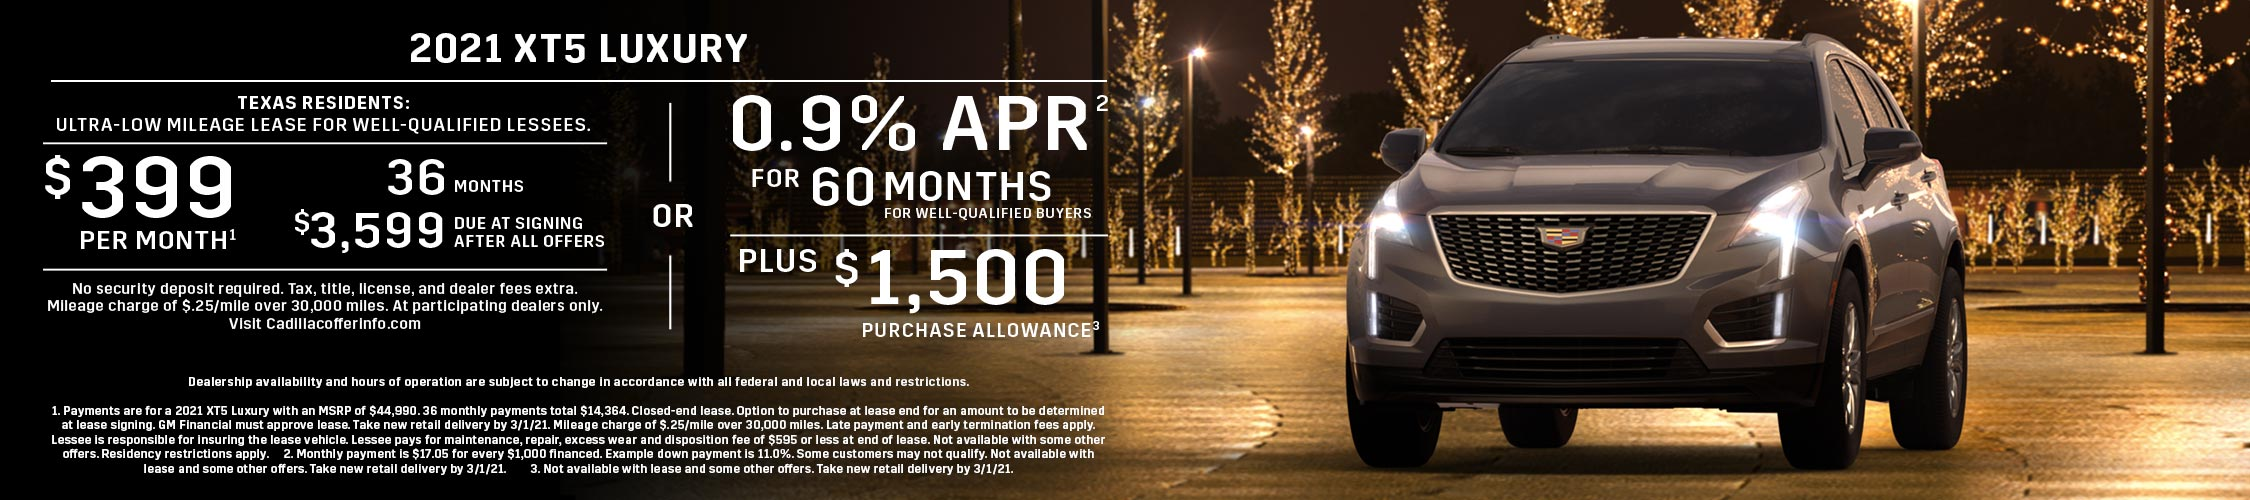 2021 XT5 Luxury: Lease or APR Offer (Image) - 4a43d1